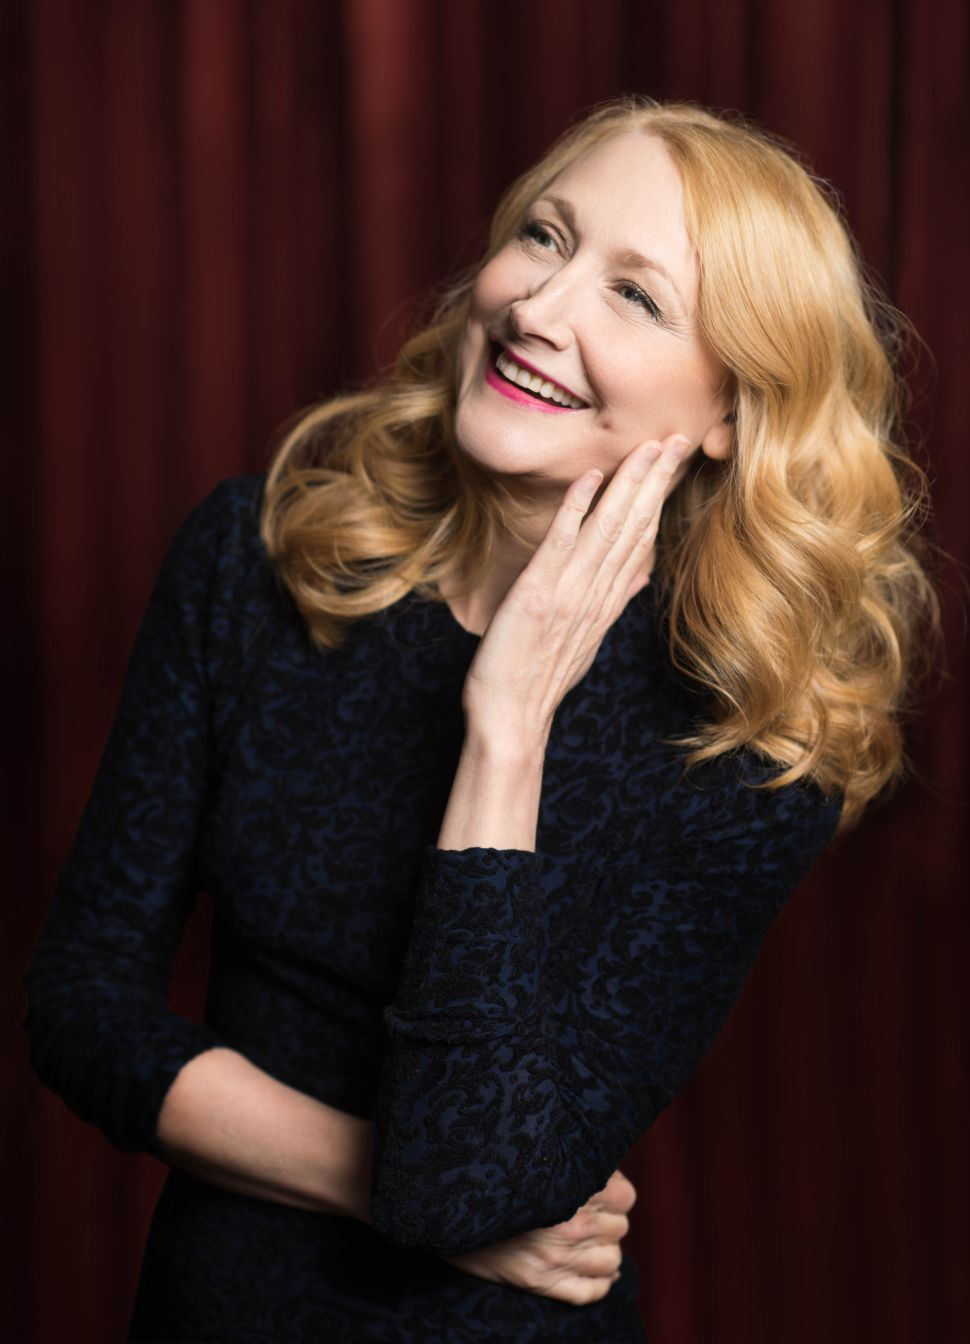 Patricia Clarkson Gleams as She Crushes on Bradley Cooper's Elephant Man